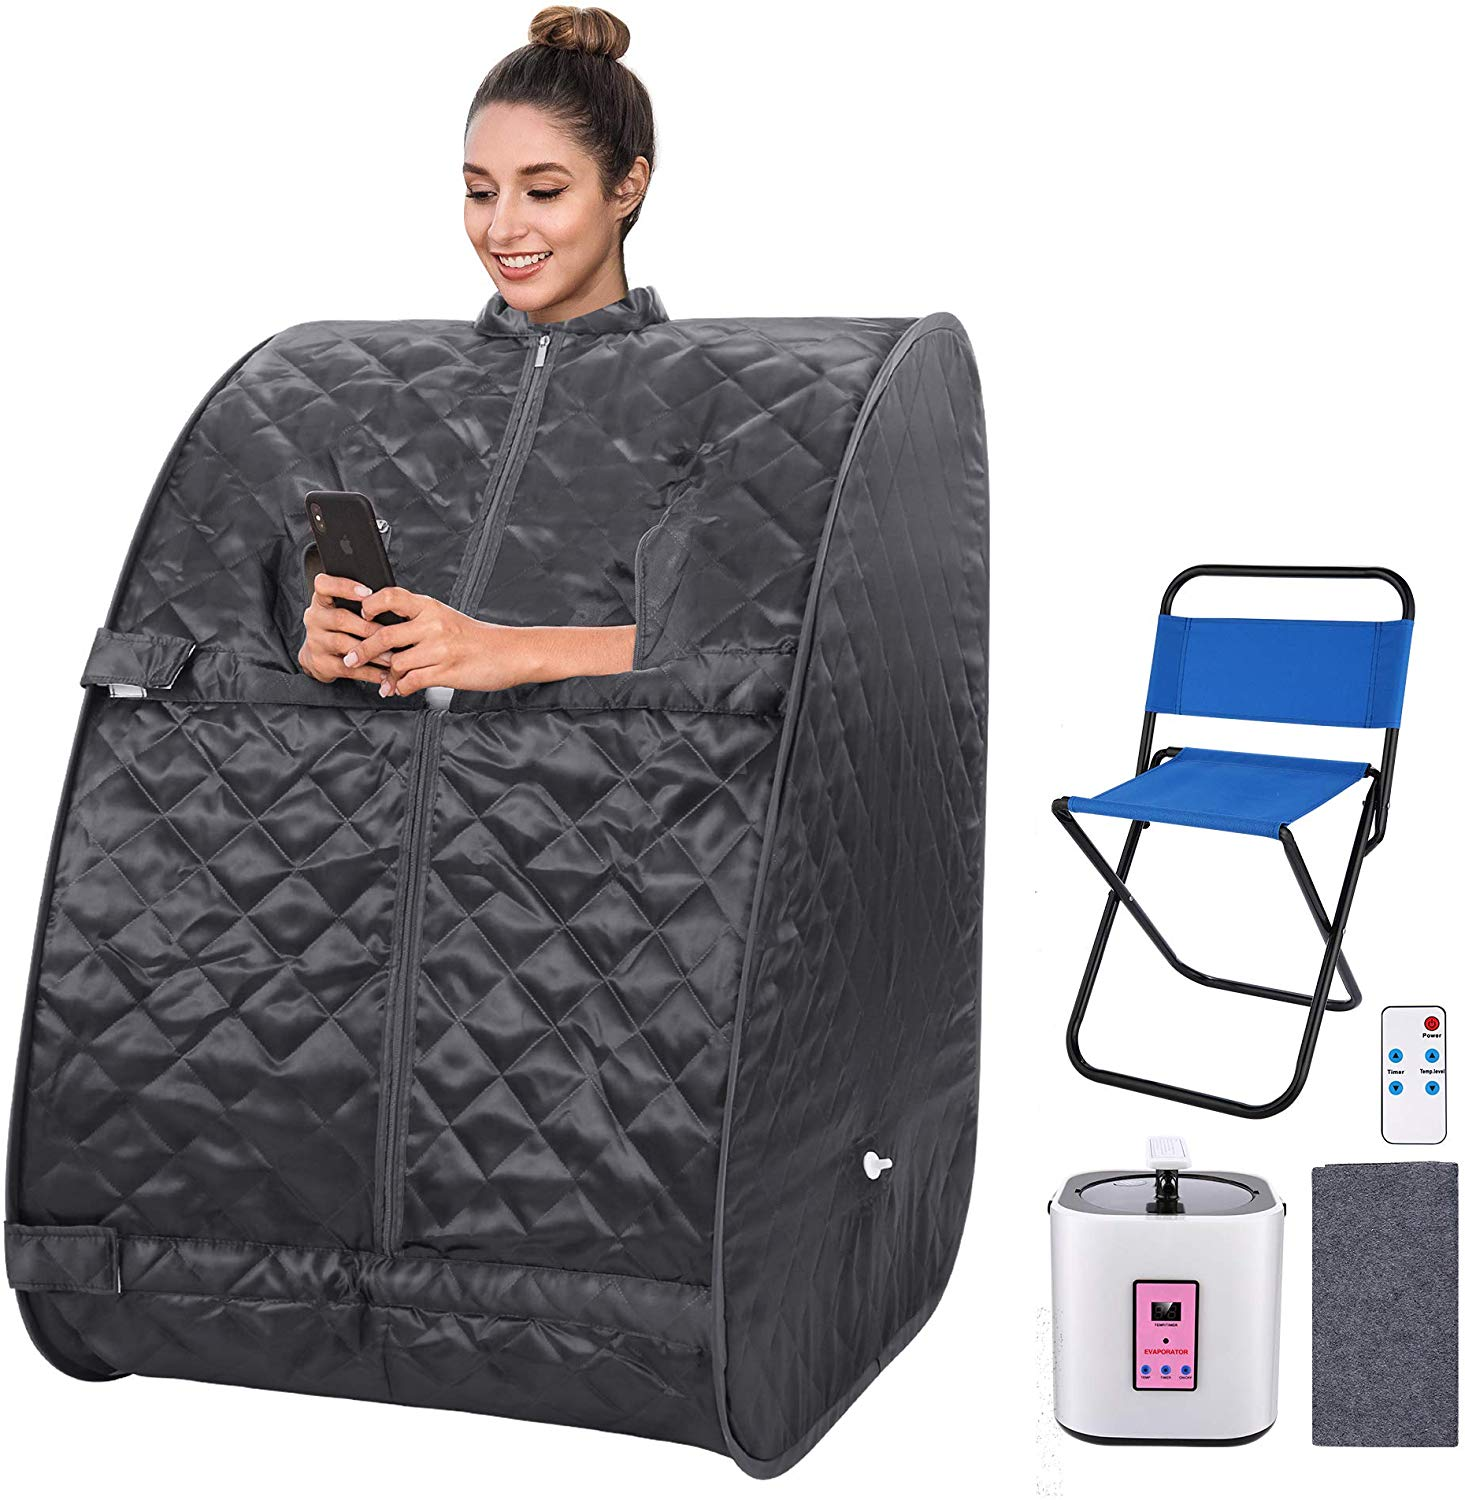 Review of OppsDecor Portable Steam Sauna Spa,One Person Sauna with Remote Control